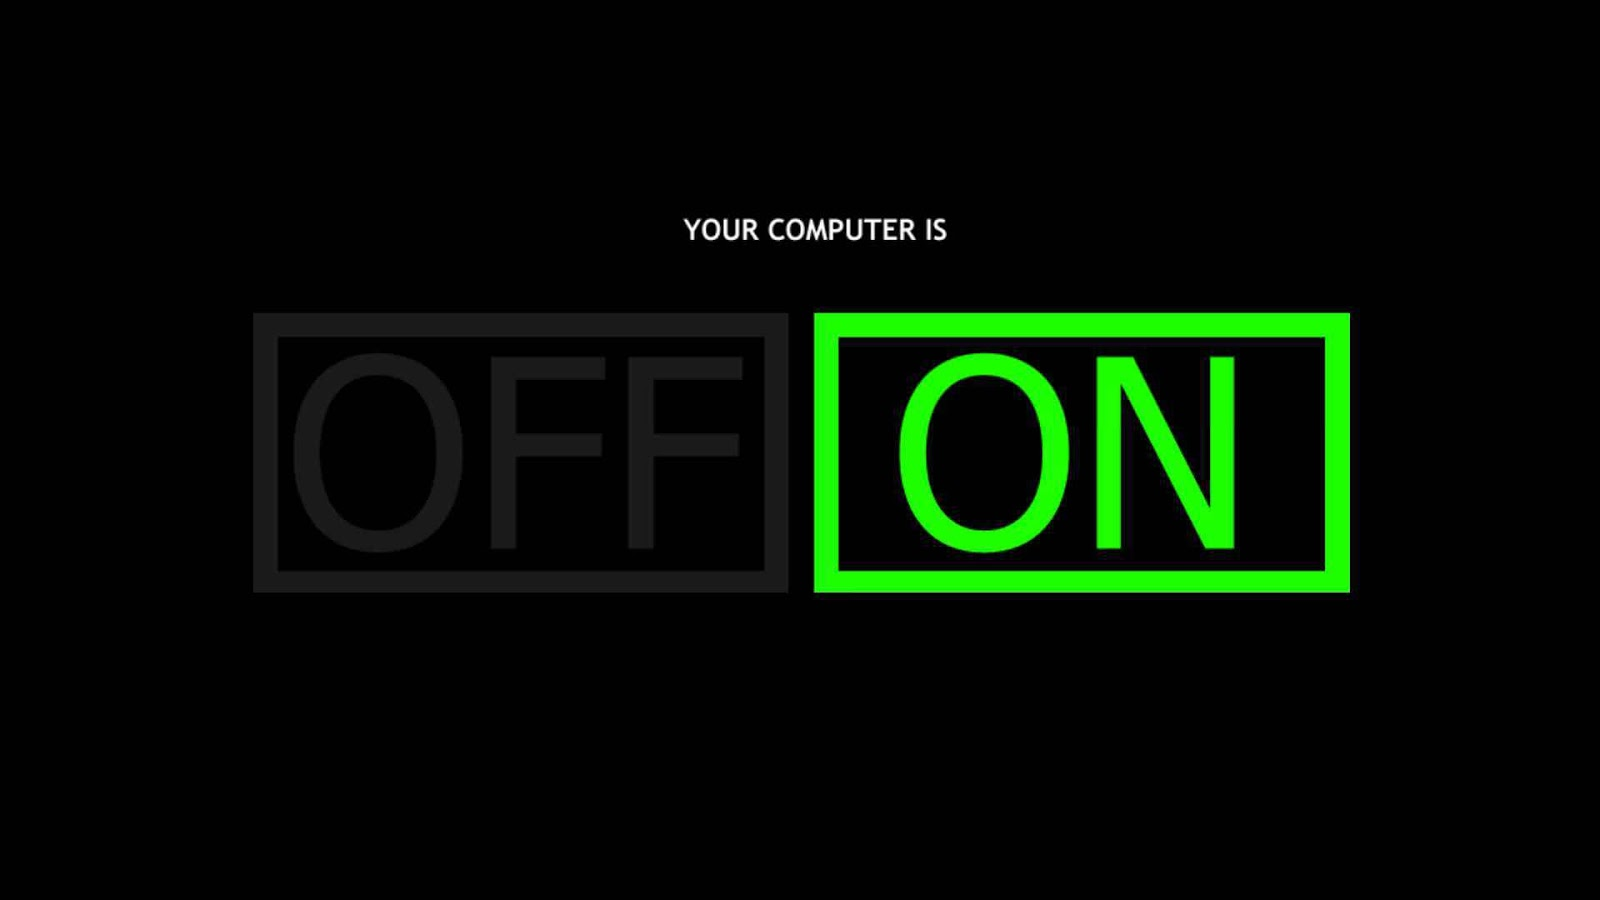 Off On Text Design Simple in Green Black Color